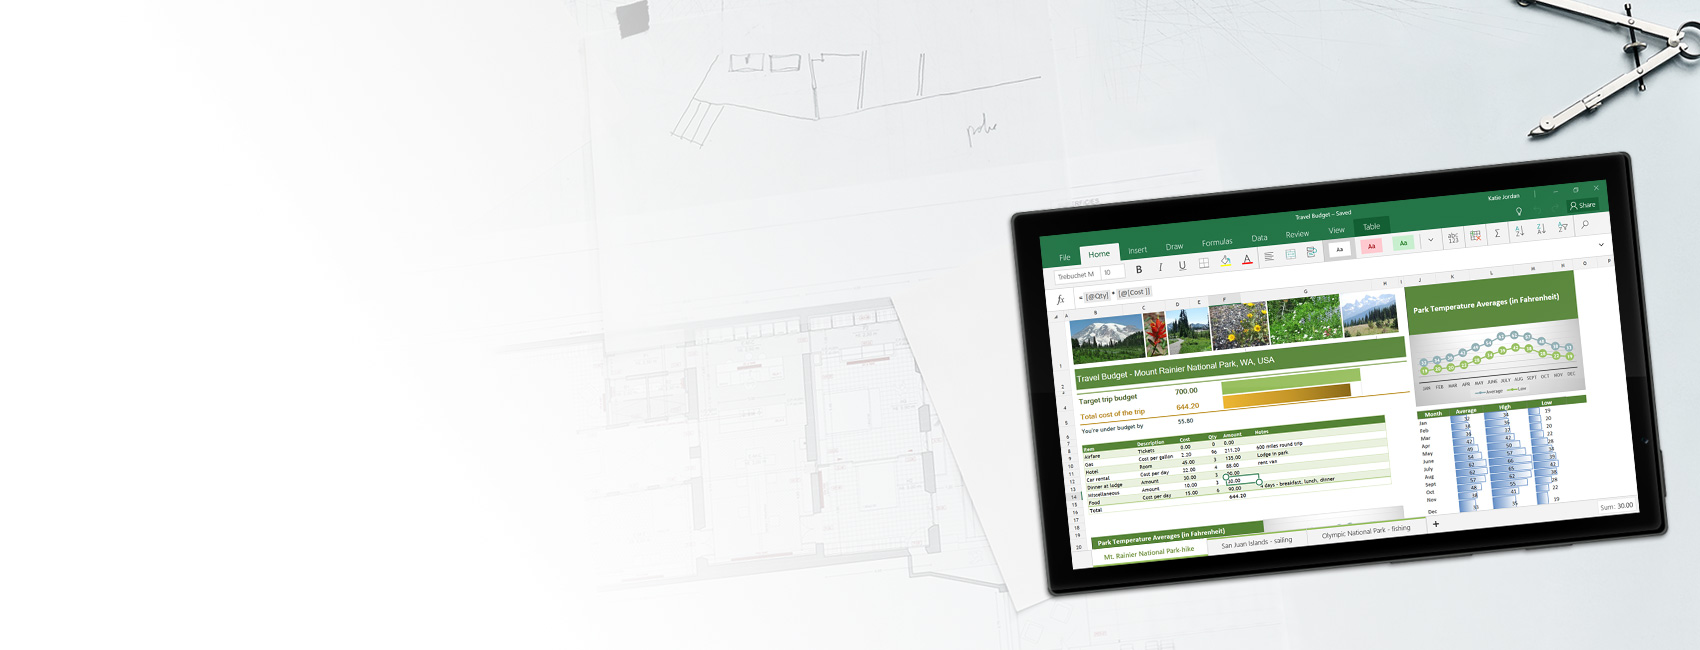 windows tablet displaying an excel spreadsheet containing a sample chart and travel budget report in excel